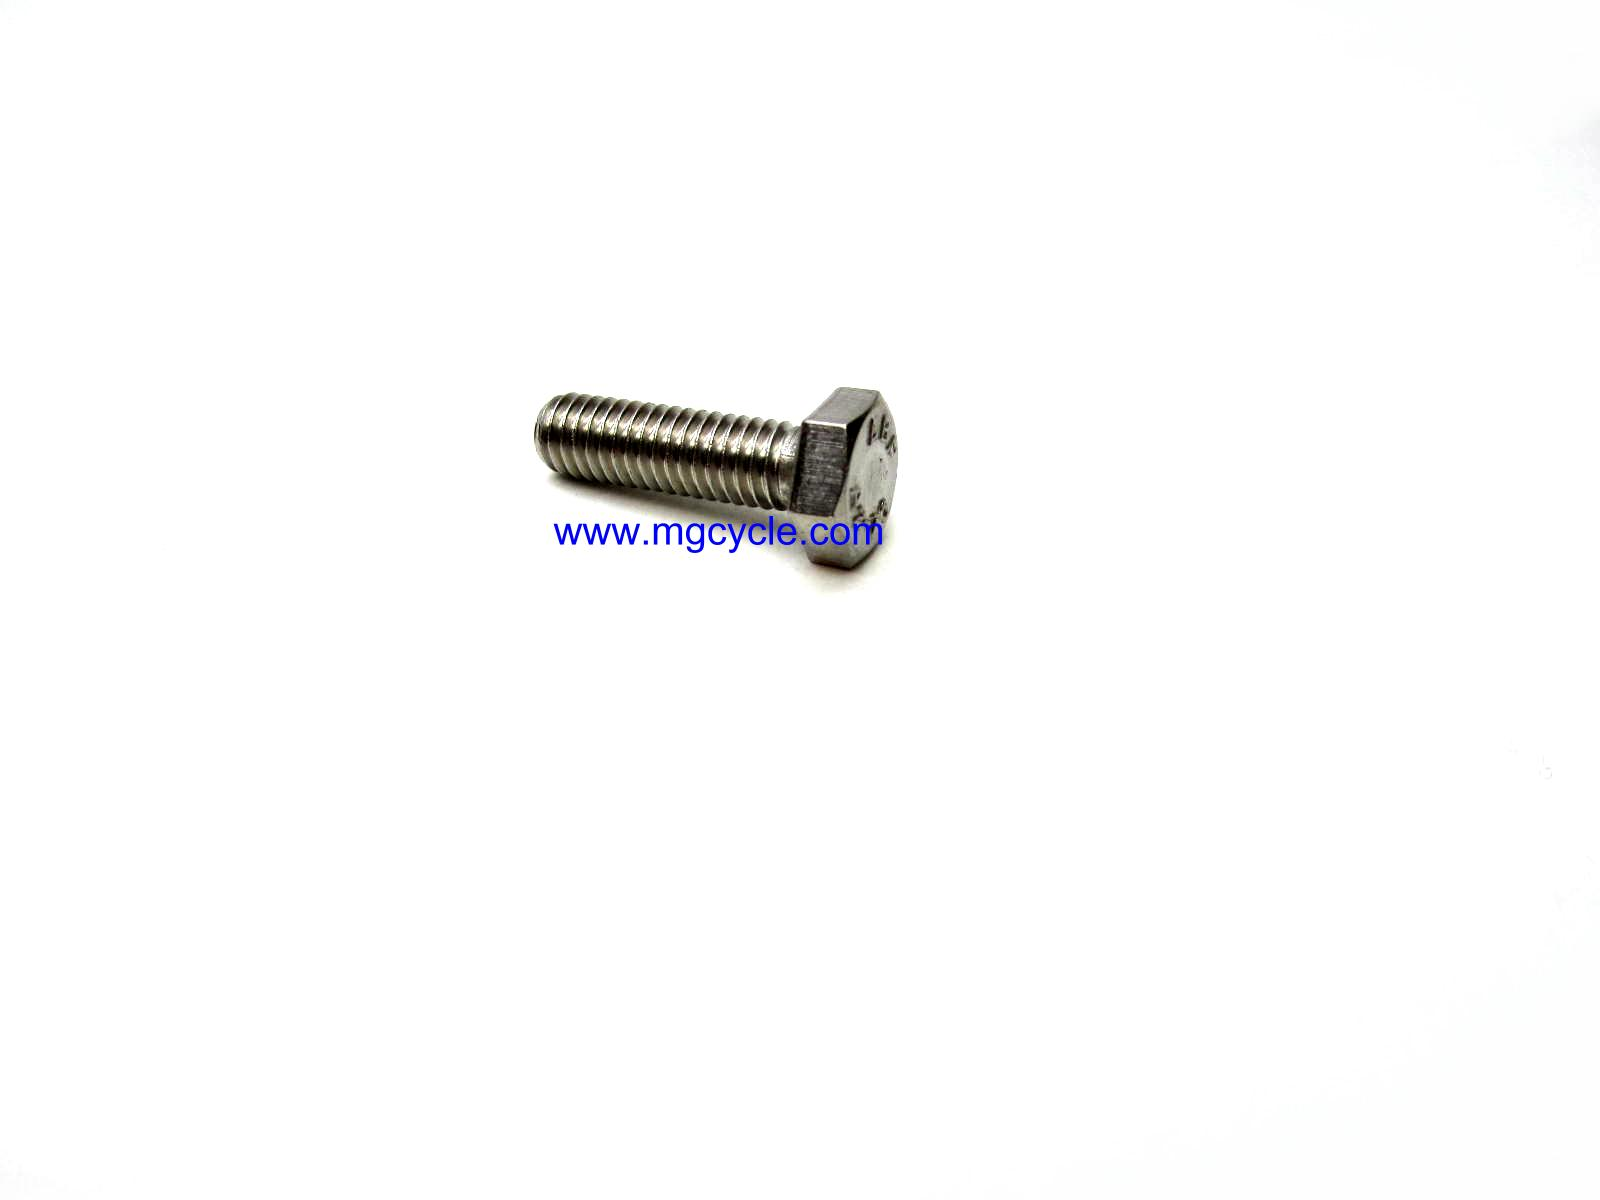 M6 hex head bolt stainless M6x1.0x20 HCS